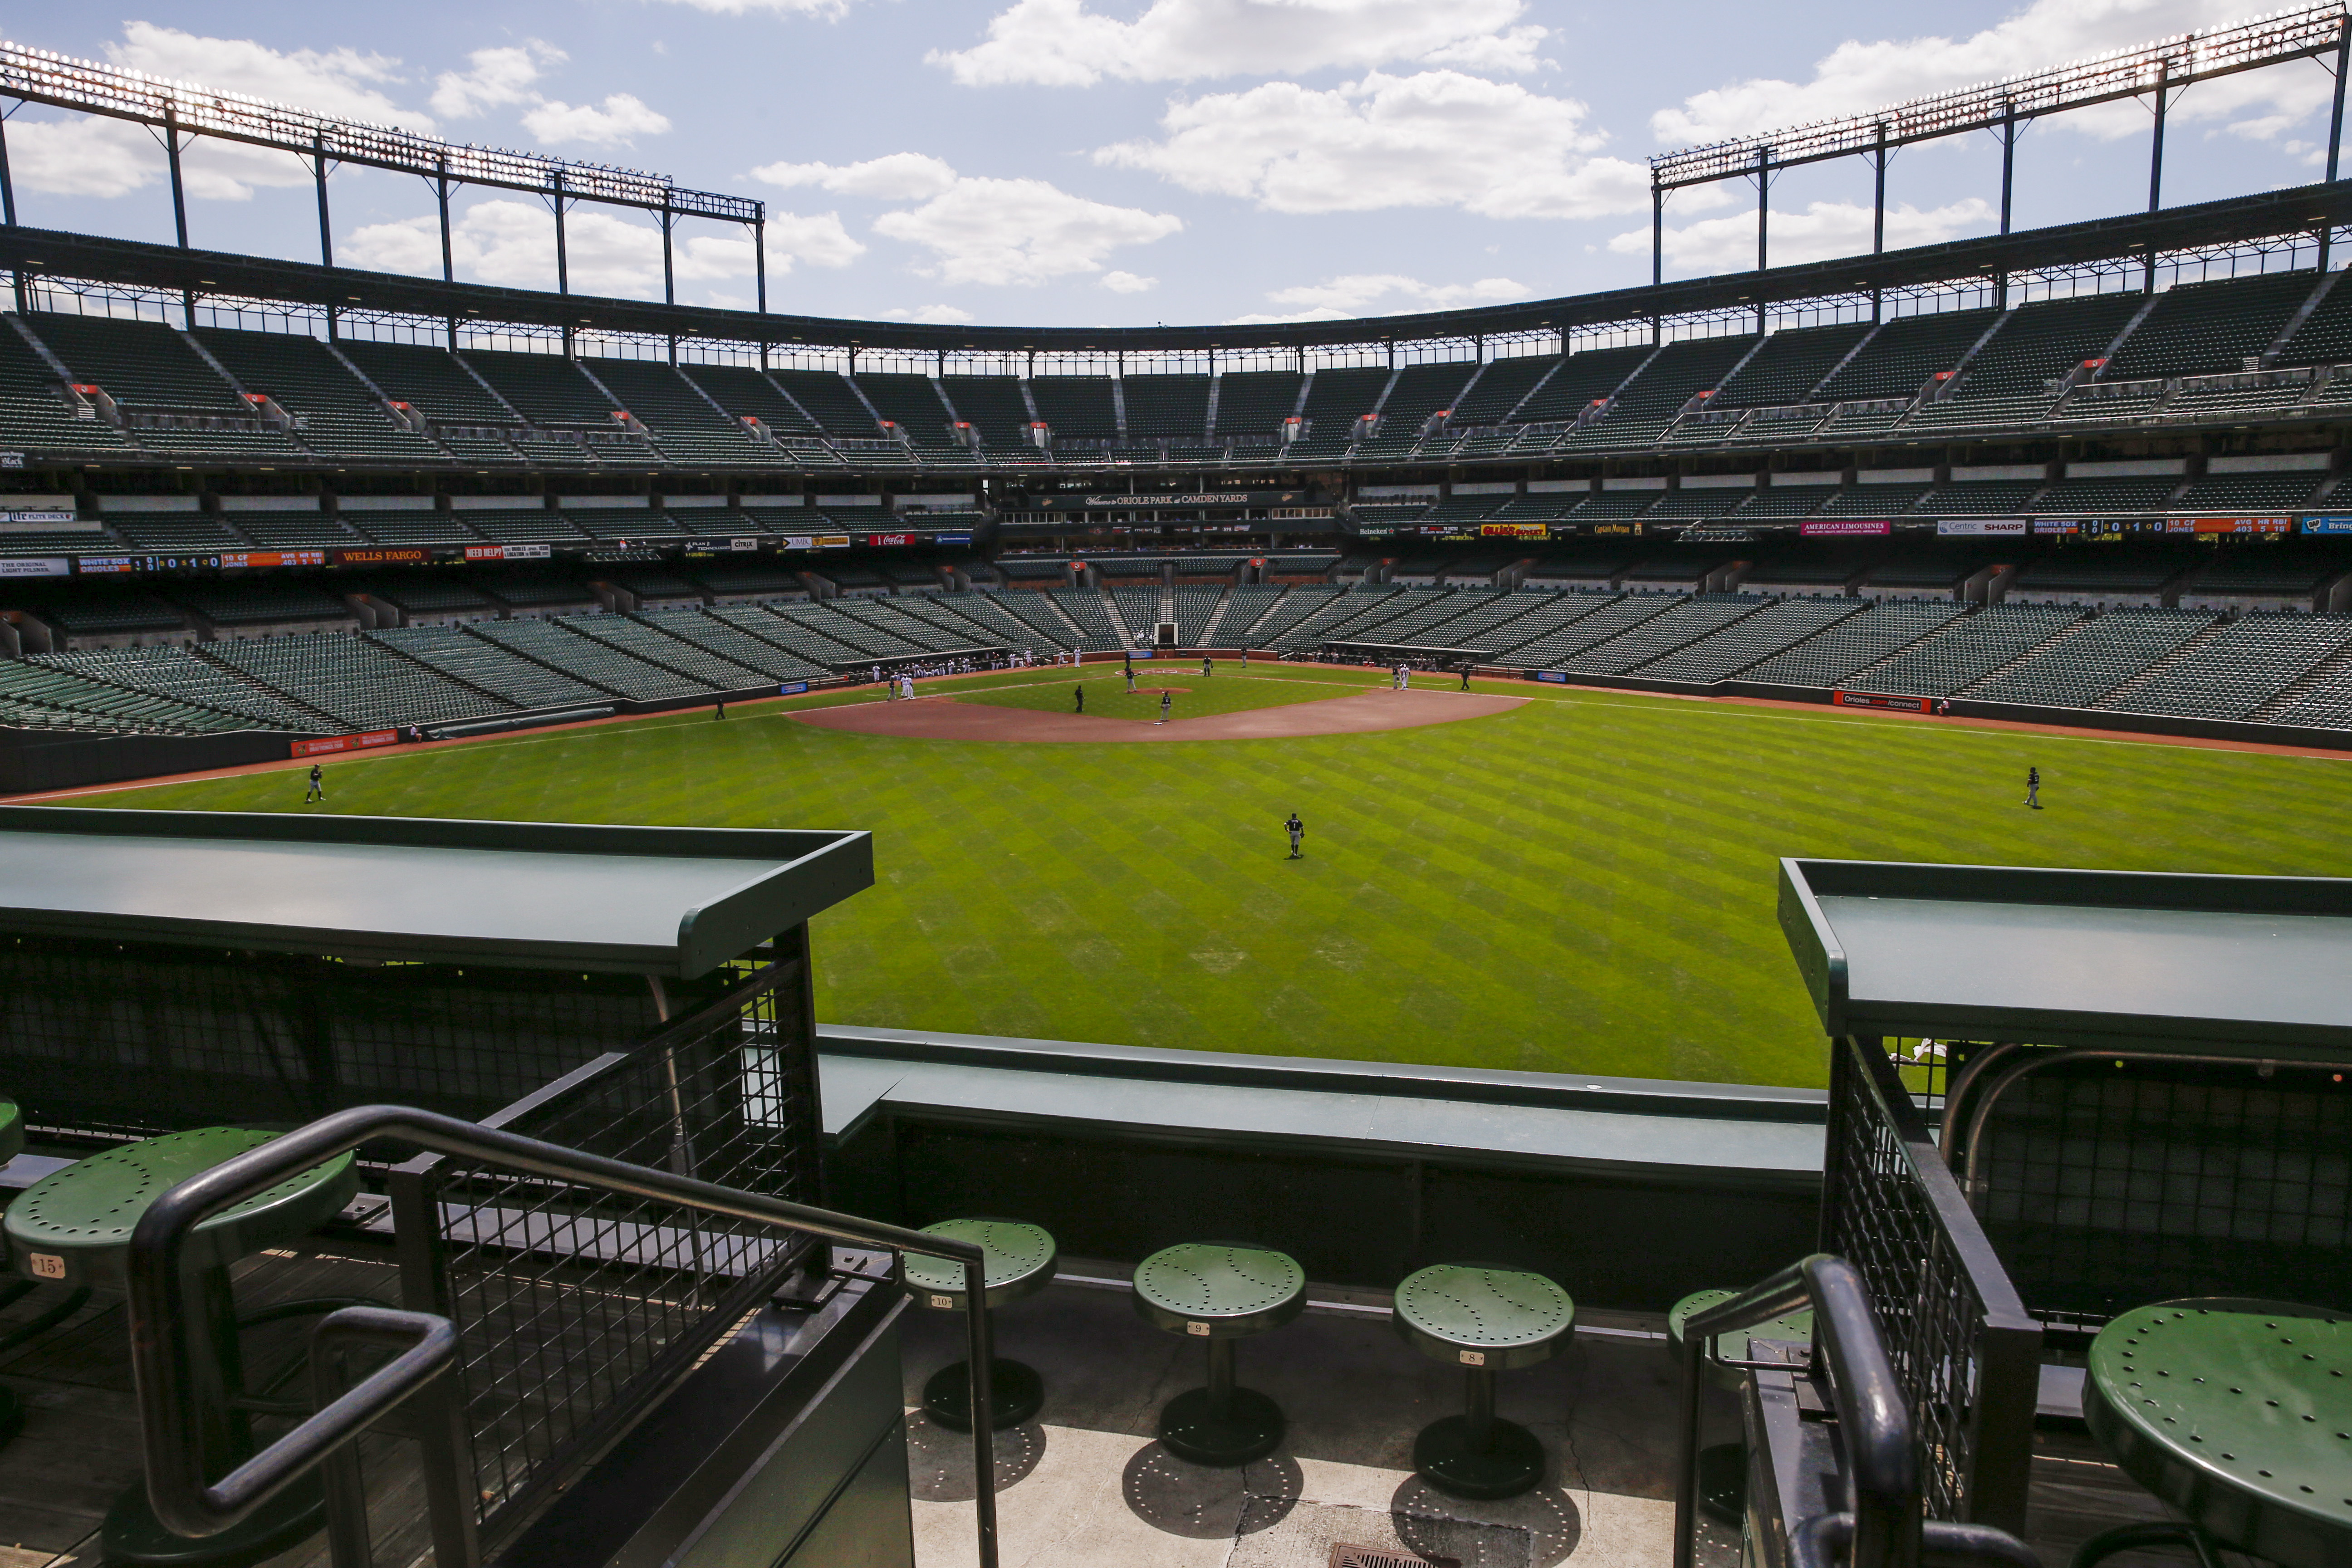 Camden Yards ballpark sits empty of fans during the Baltimore Orioles against Chicago White Sox American League baseball game in Baltimore, Maryland